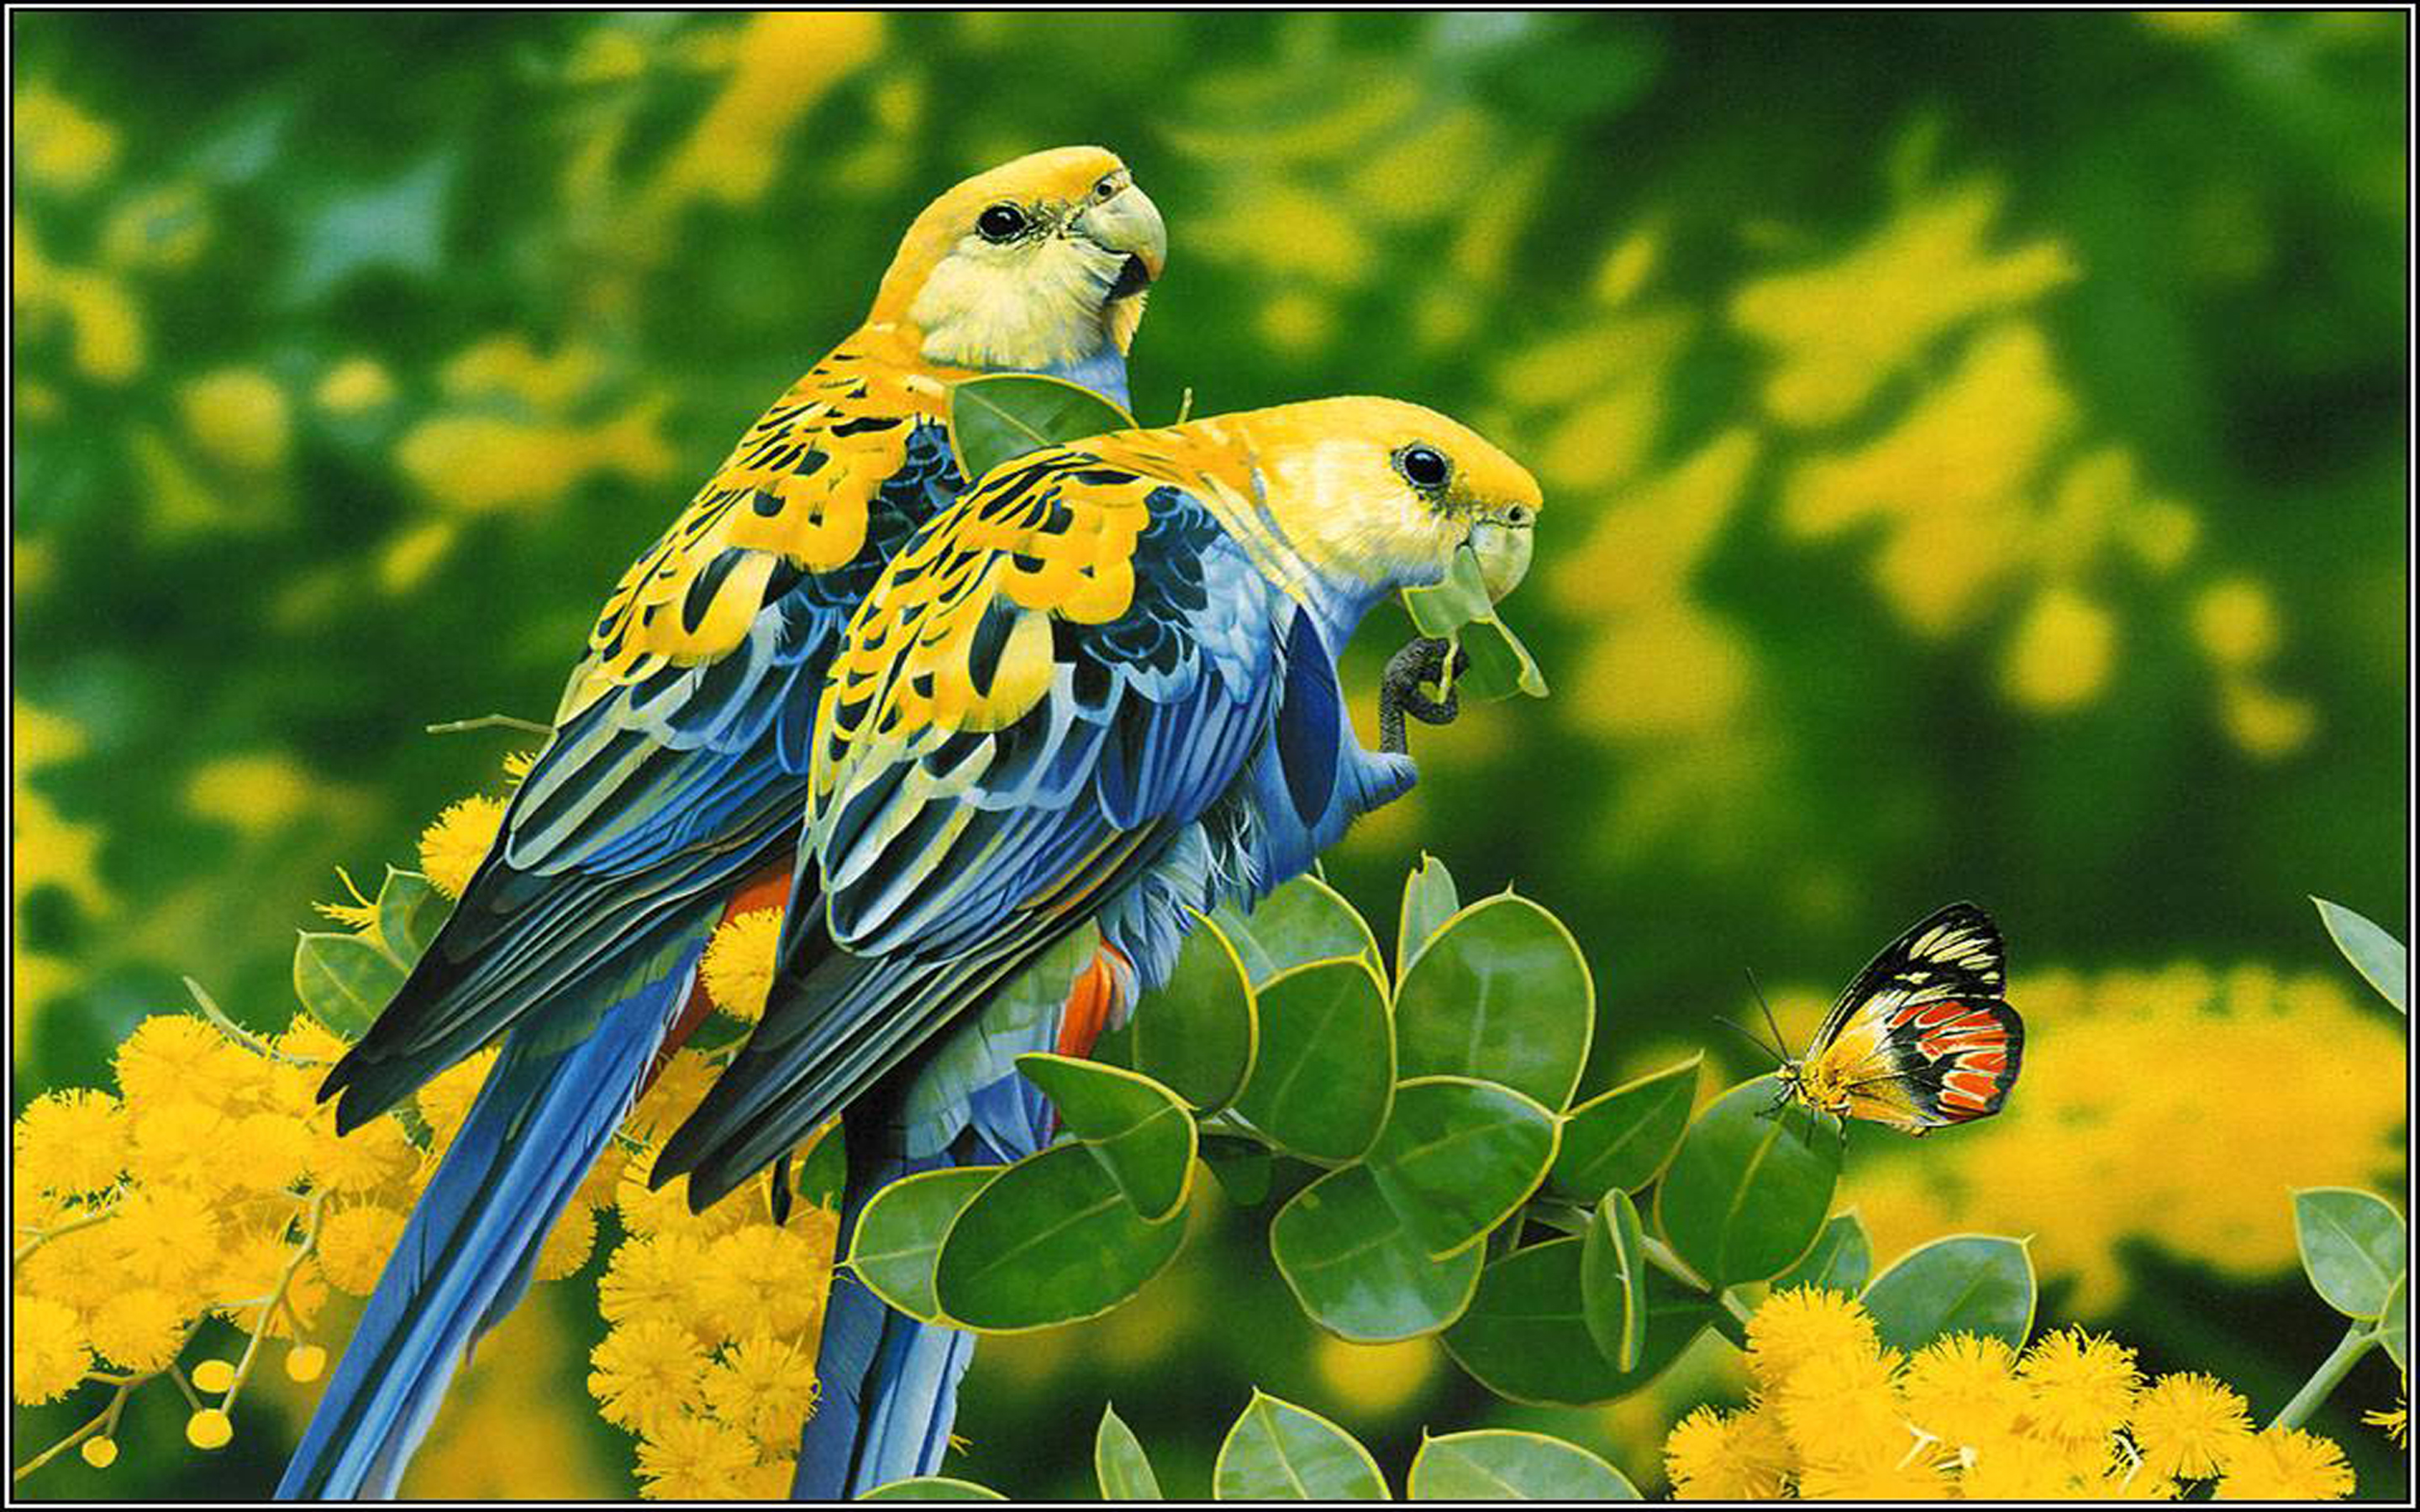 3d Wallpapers For Pc Full Screen Free Download Birds Blue Yellow Parrots Butterfly Tree With Yellow